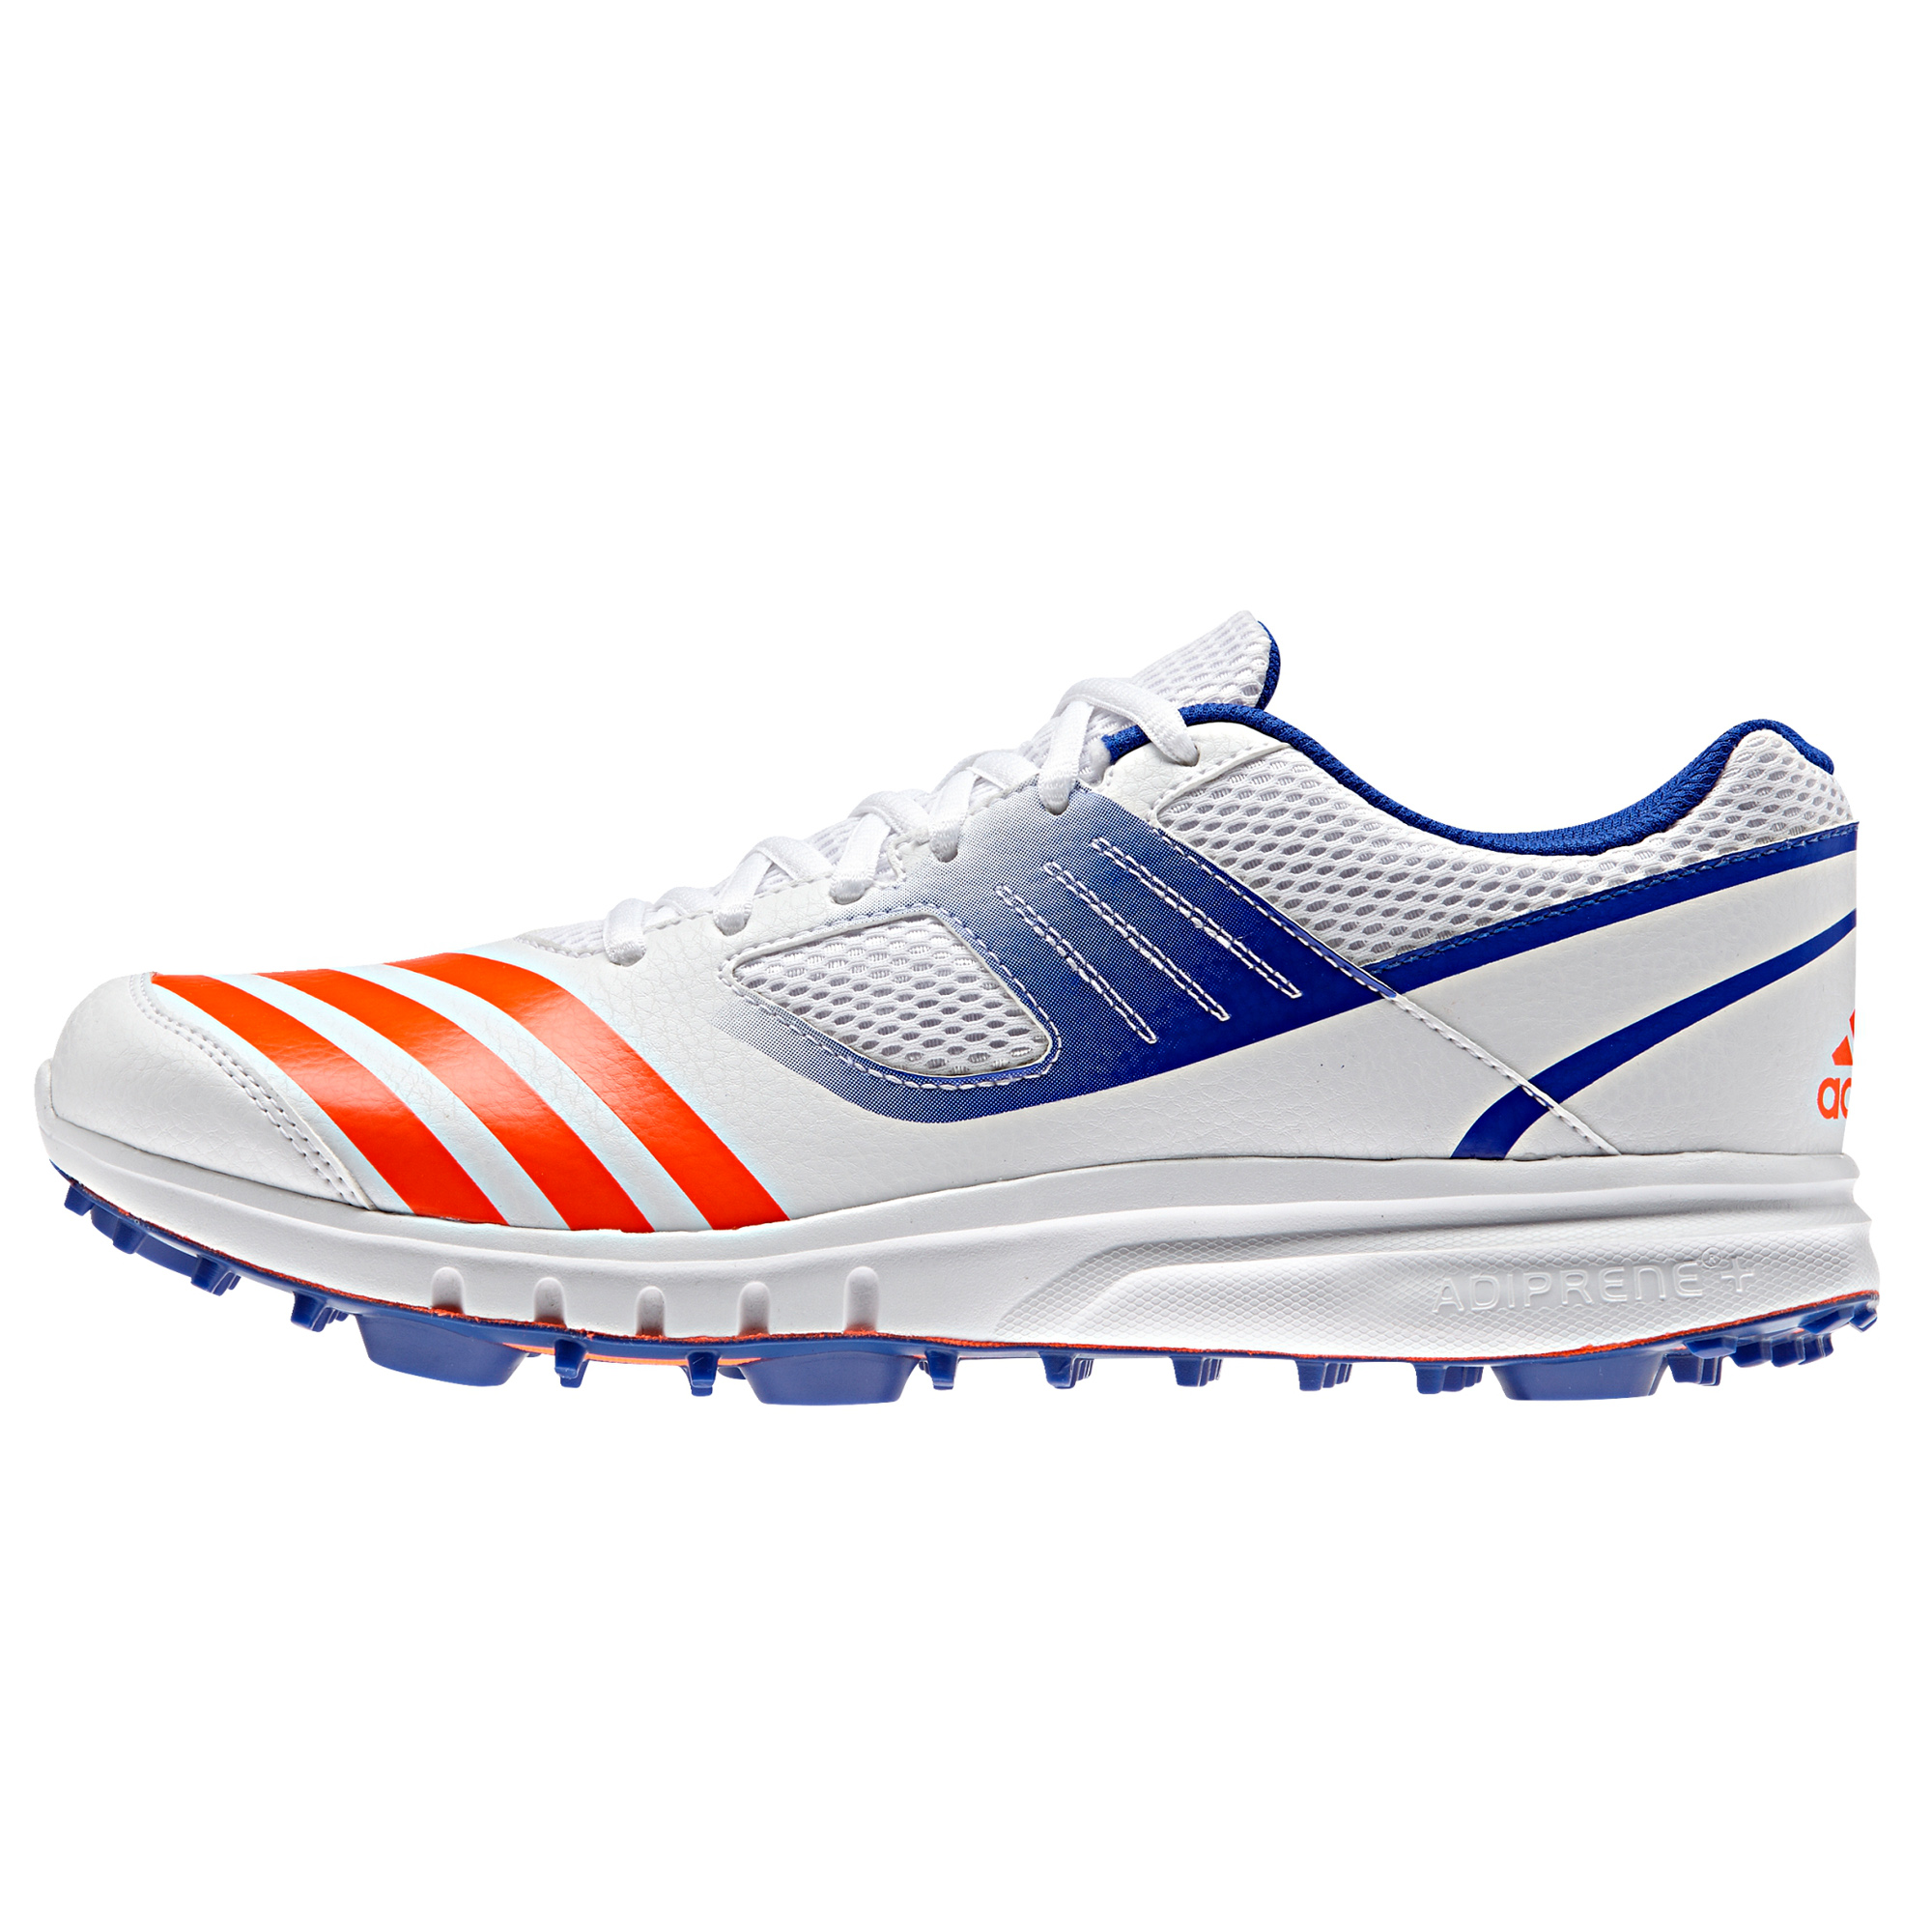 0d269f40b5f adidas Junior Howzat FS V Cricket Spikes Shoes White Sports ...